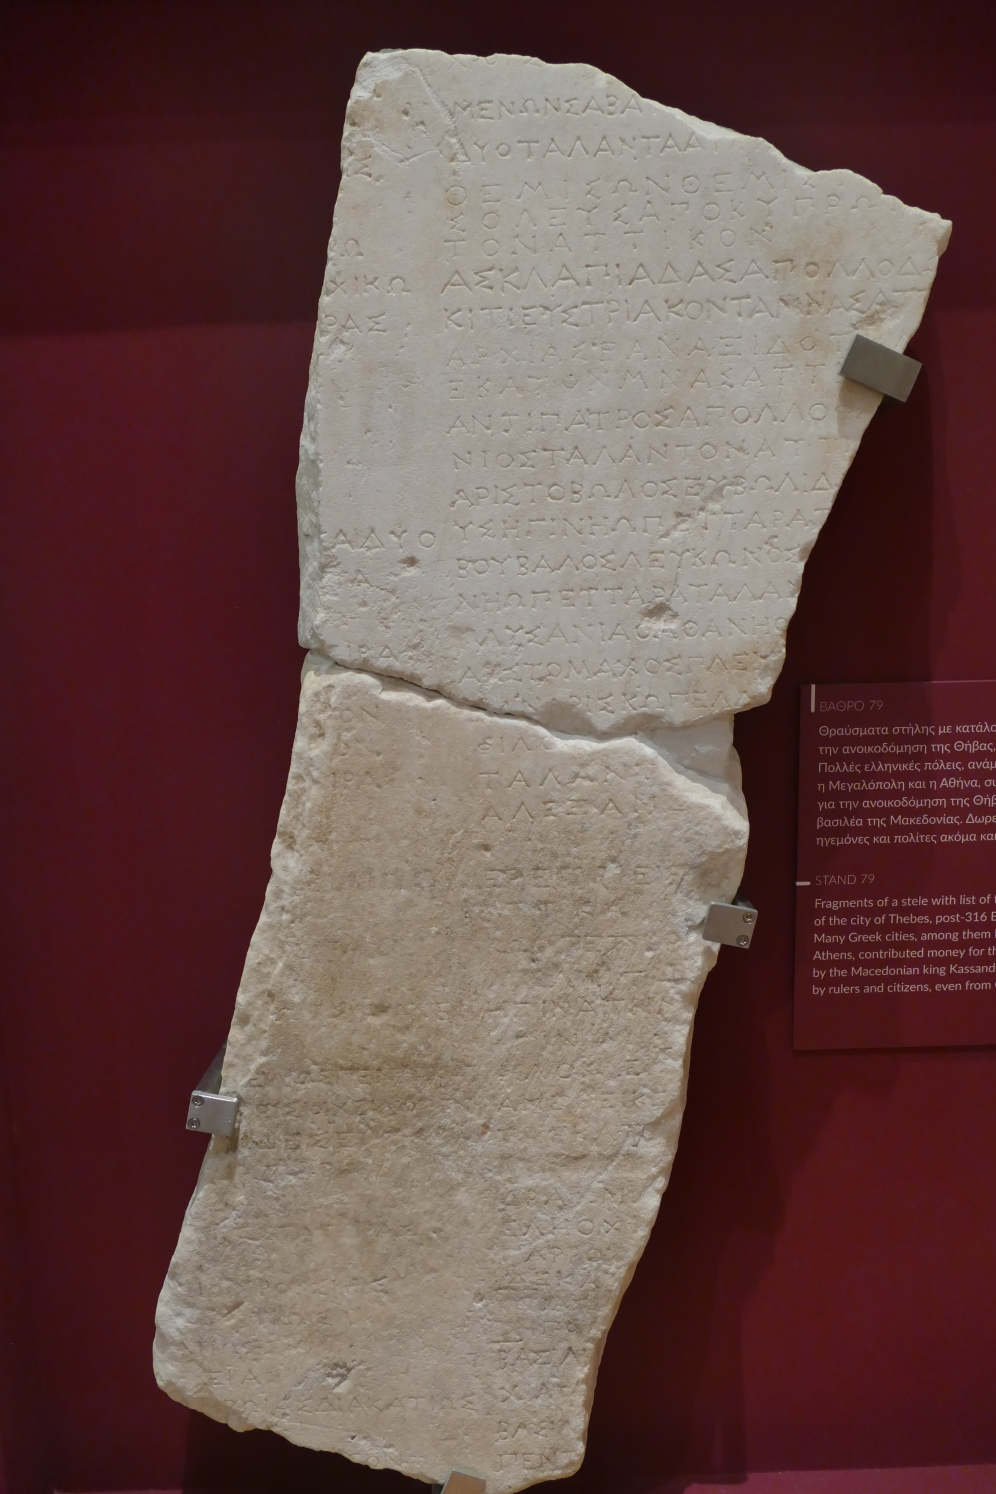 Stone stele of gifts for the refounding of Thebes in 316 BC (Thebes Museum)